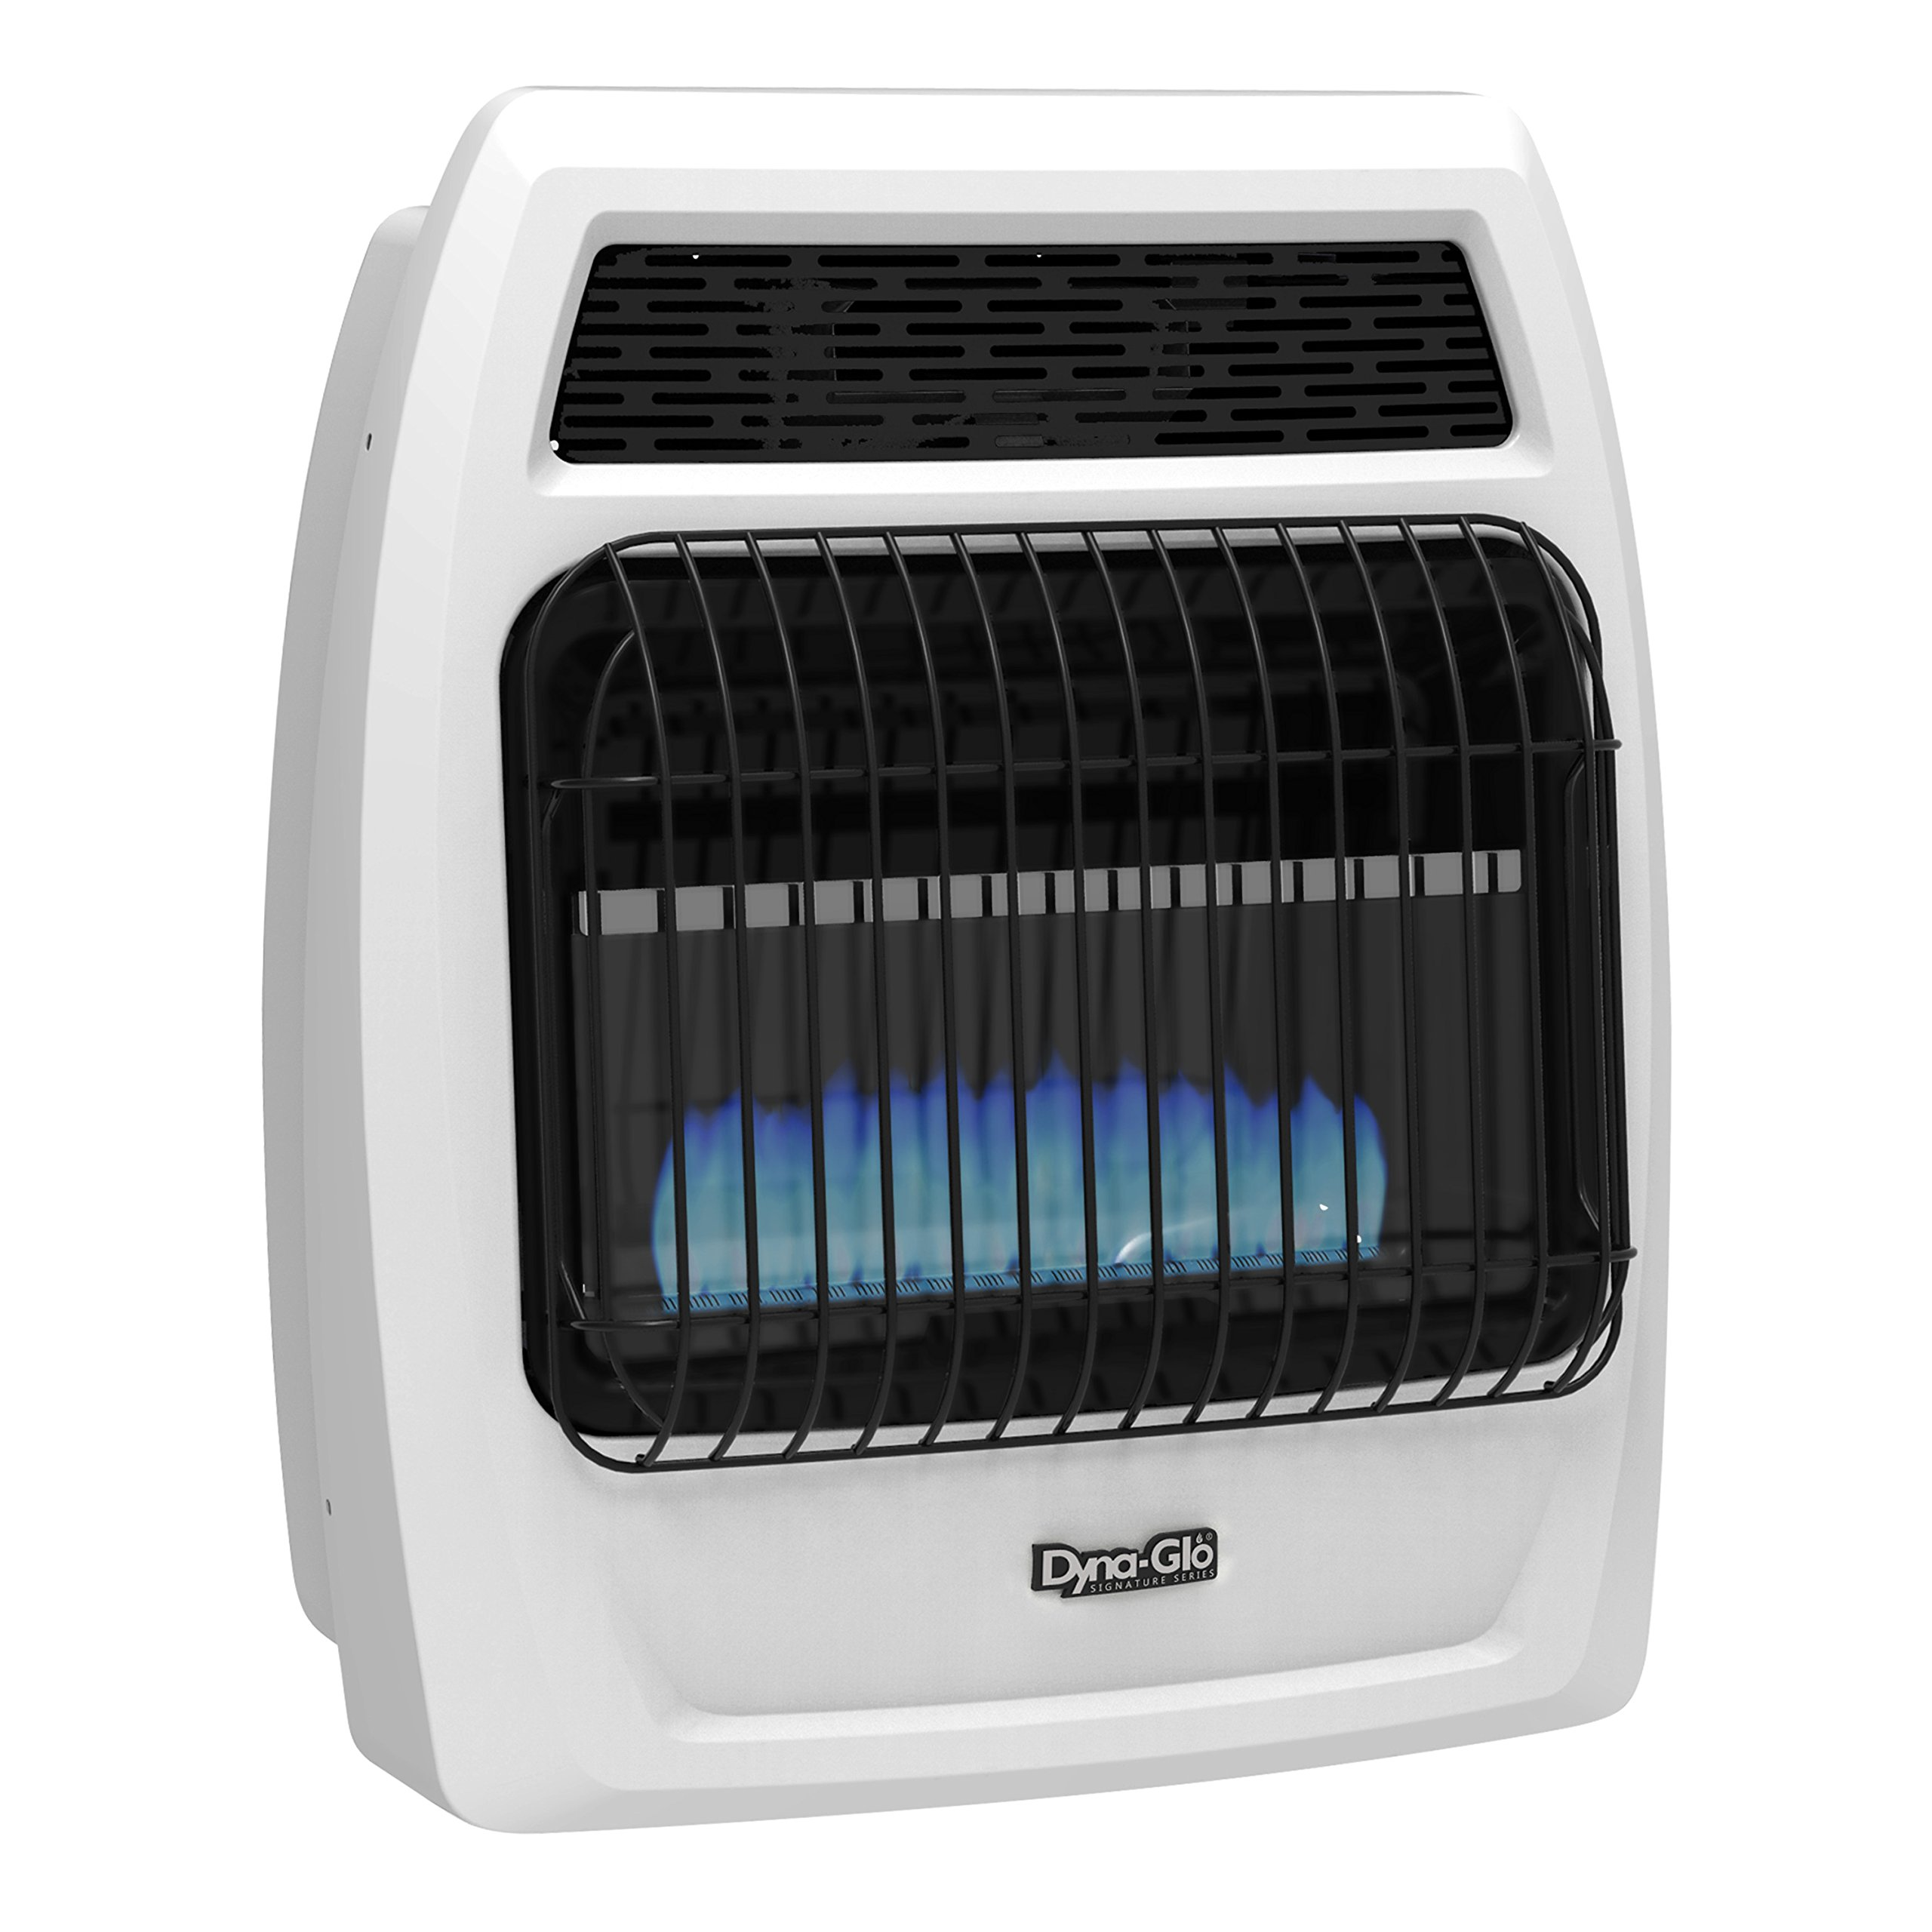 Dyna Glo BFSS20NGT-2N 20,000 Btu Natural Gas Blue Flame Vent Free Thermostatic Wall Heater 20K NG T-Stat